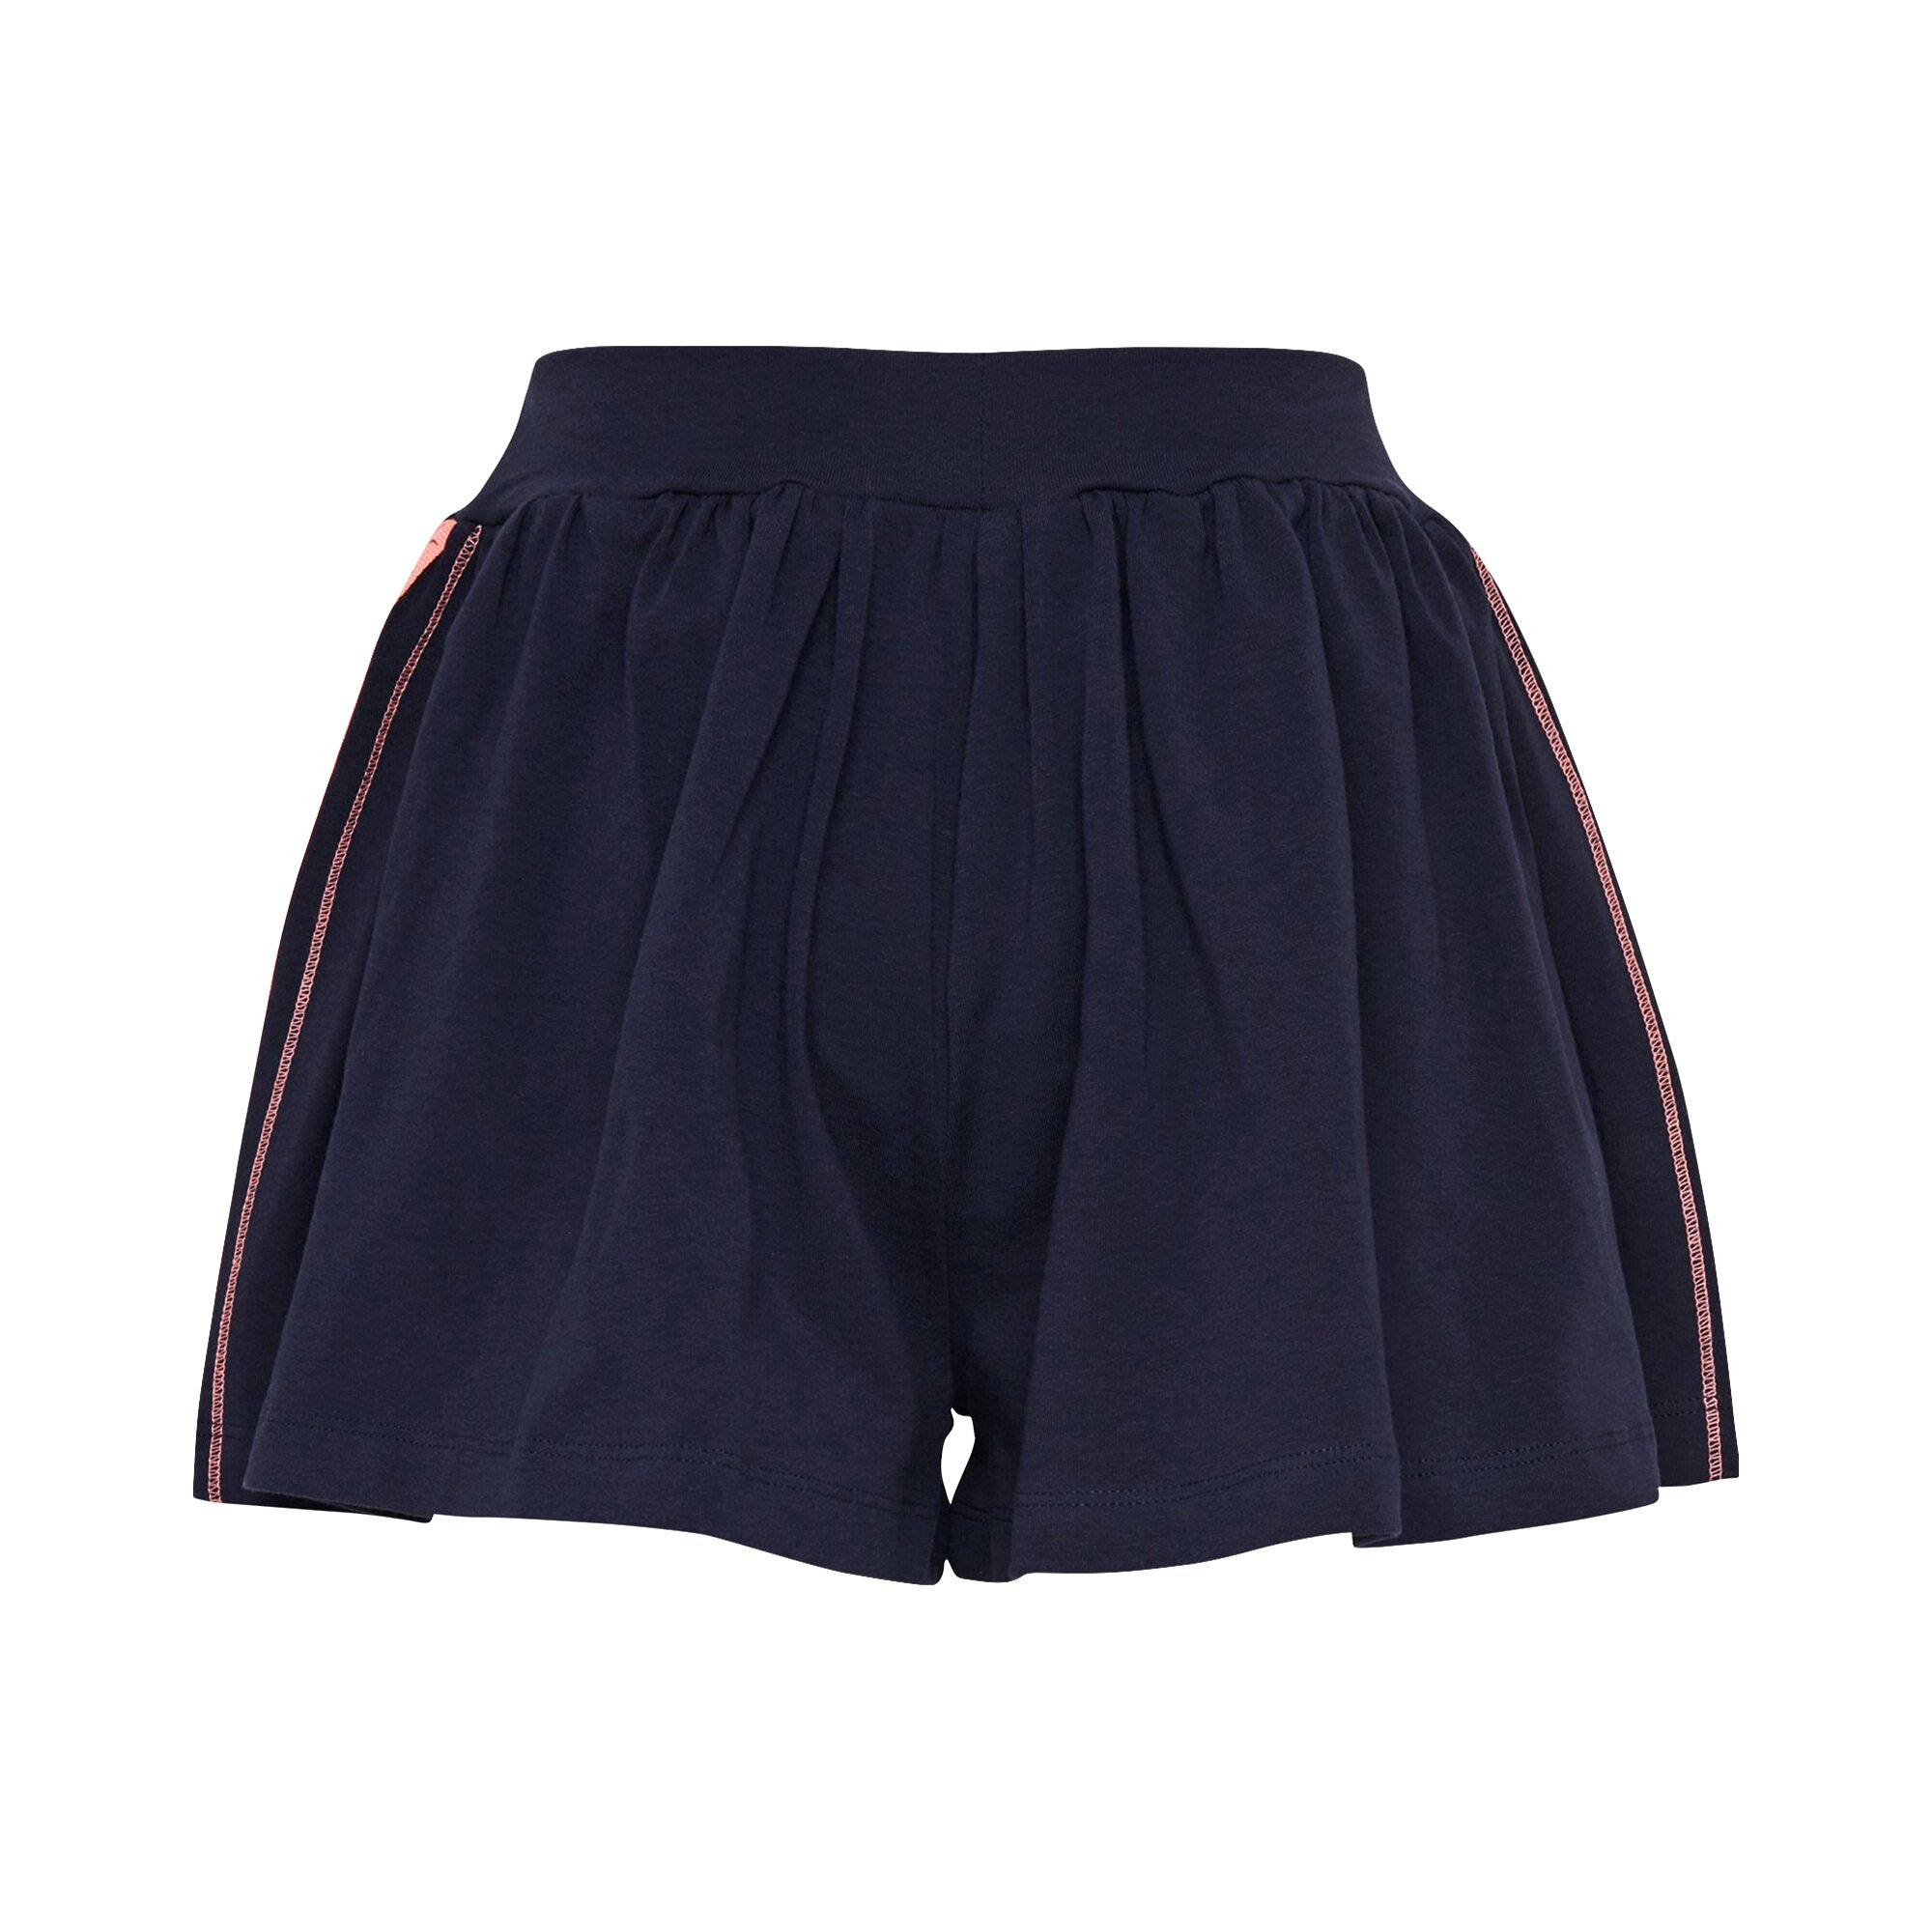 lego-wear-shorts-lwpaola